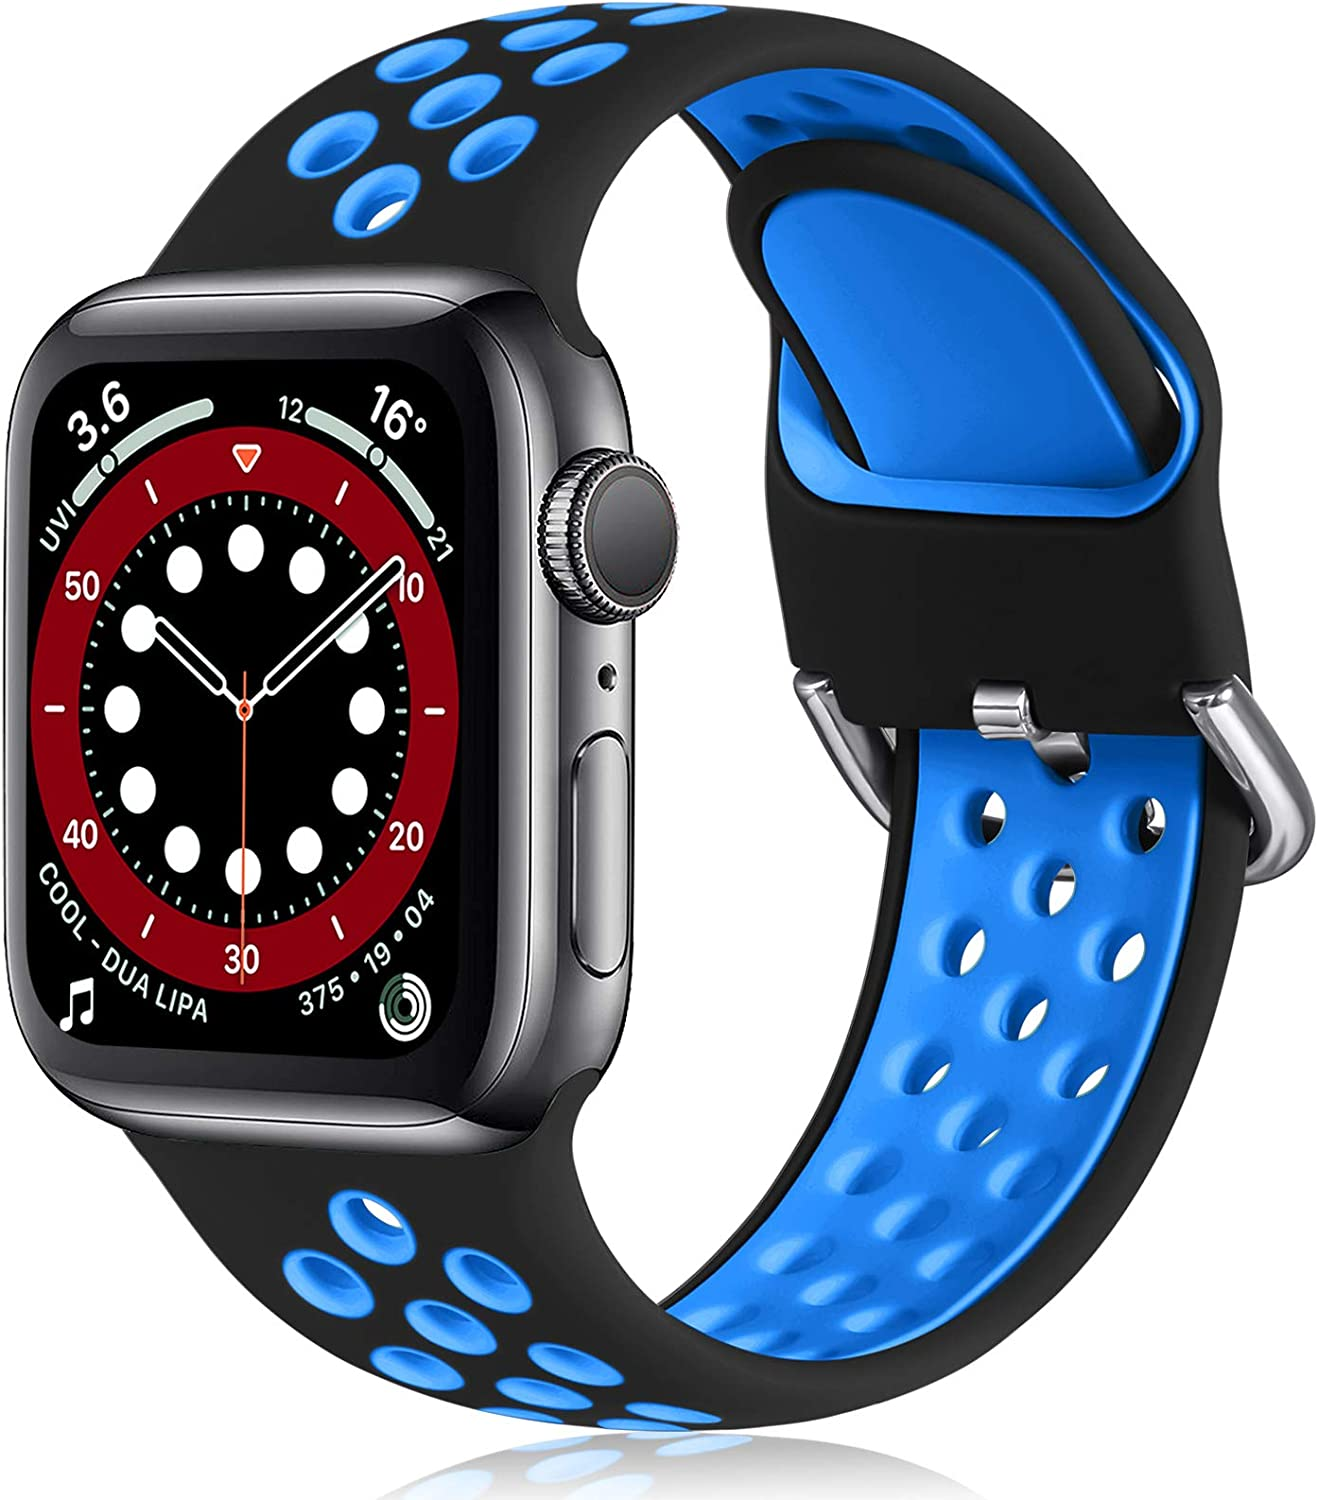 Witzon Compatible with Apple Watch Band 38mm 40mm Soft Silicone Waterproof Breathable Replacement Wristband Sport Bands for iWatch Series 1/2/3/4/5/6/SE Women Men, Black Blue, S/M